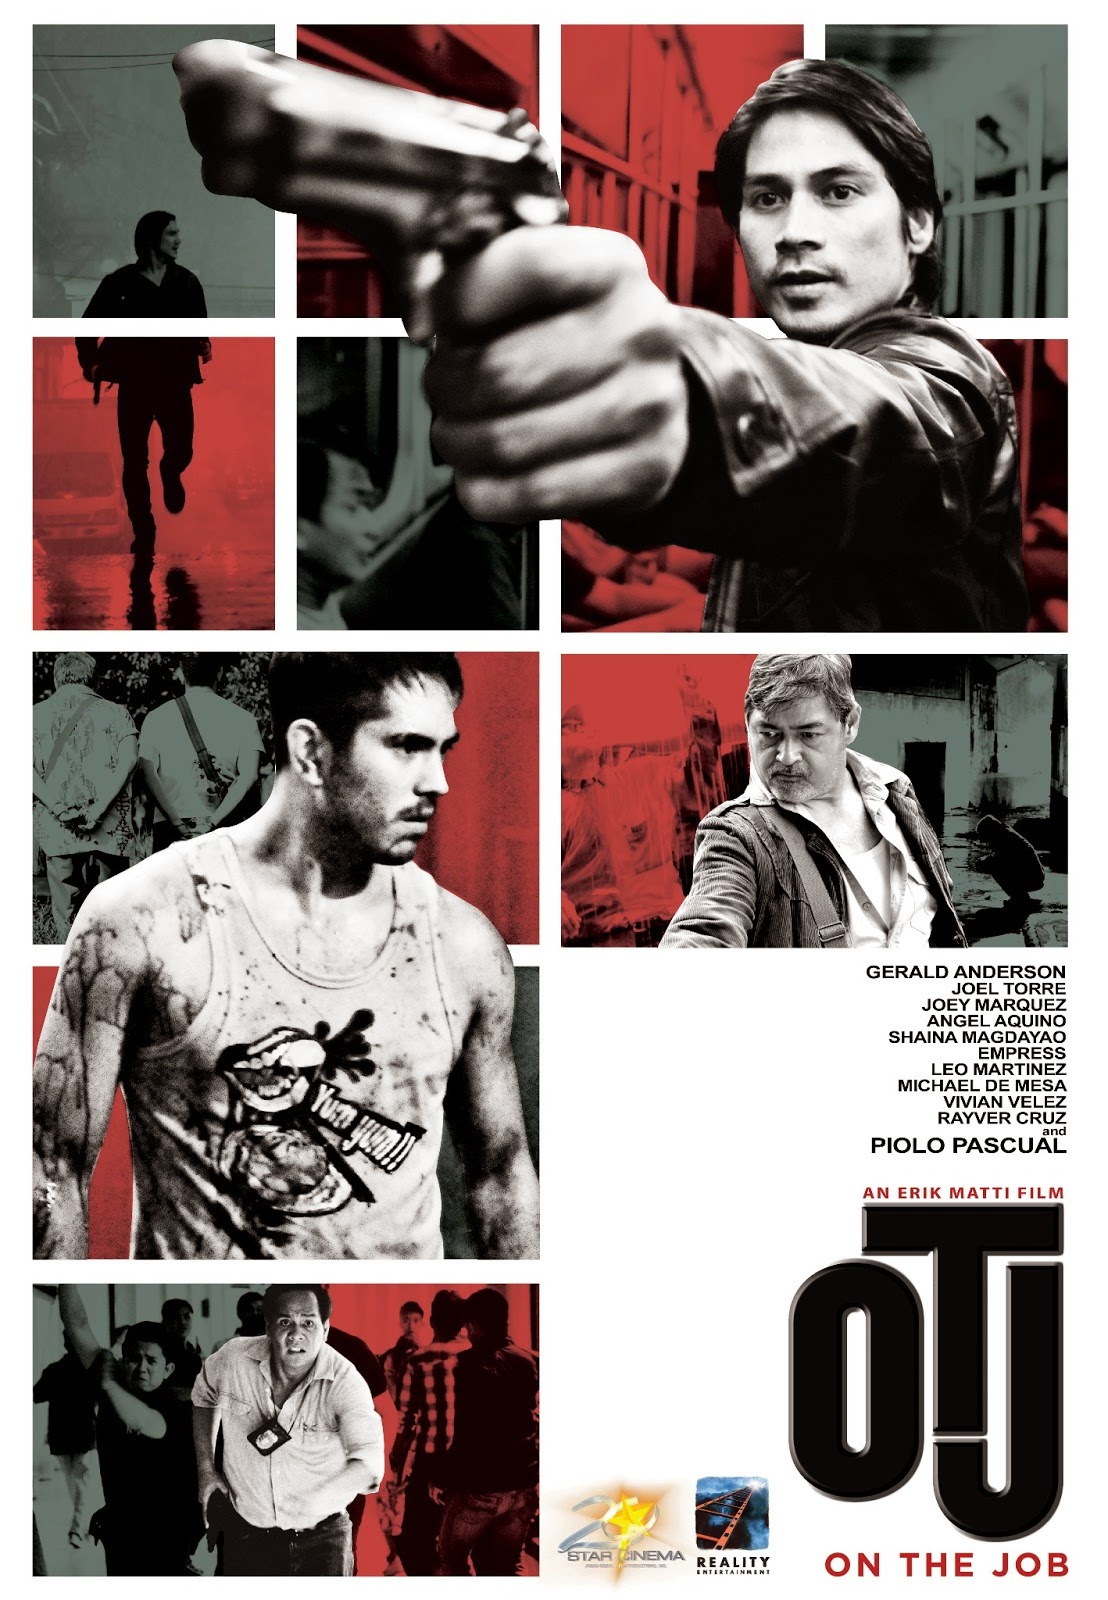 On the Job (2013 film)